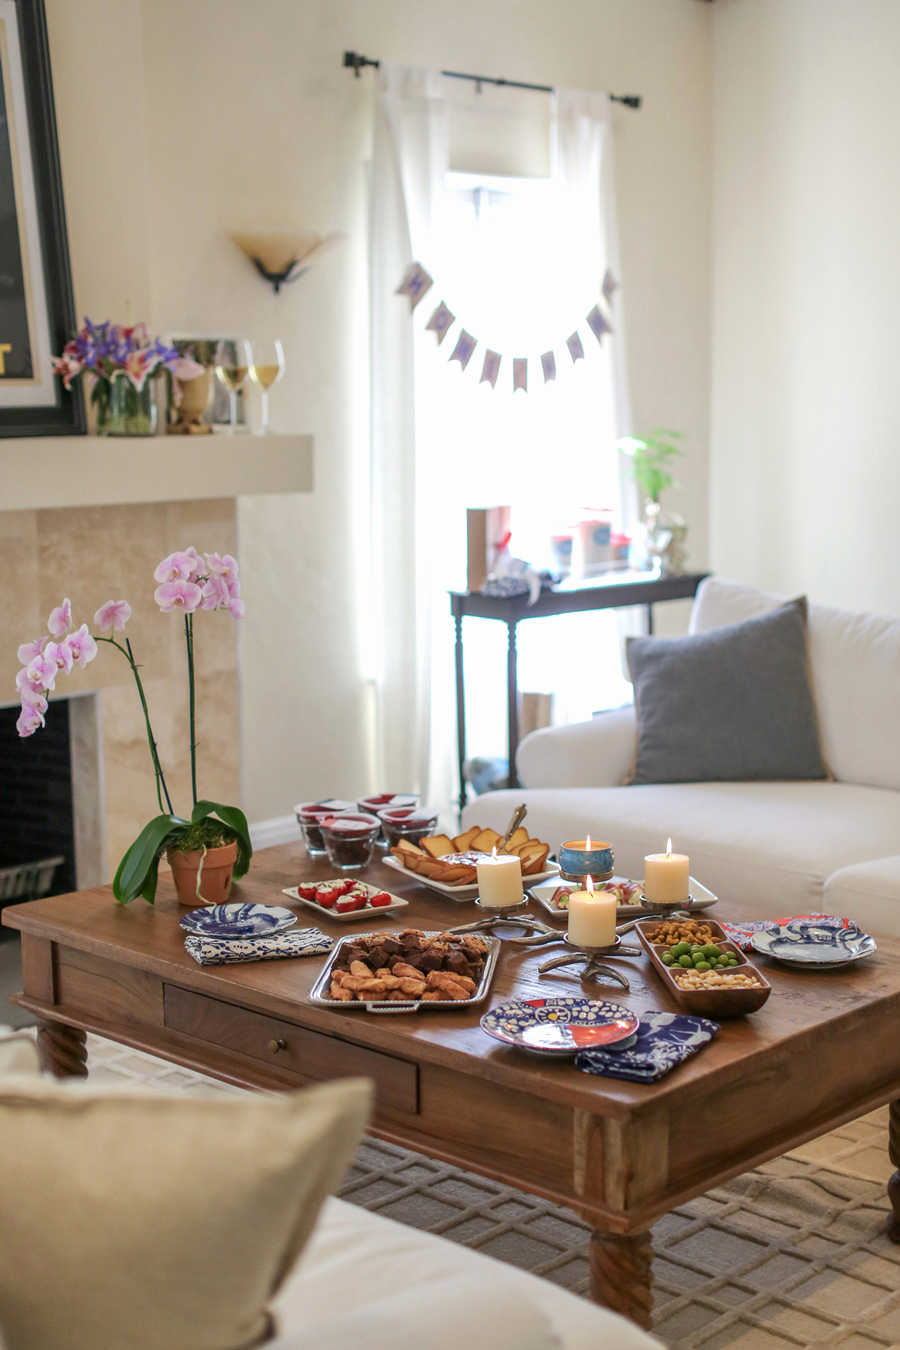 House Warming Party Invitation Ideas New How to Throw A Great Housewarming Party